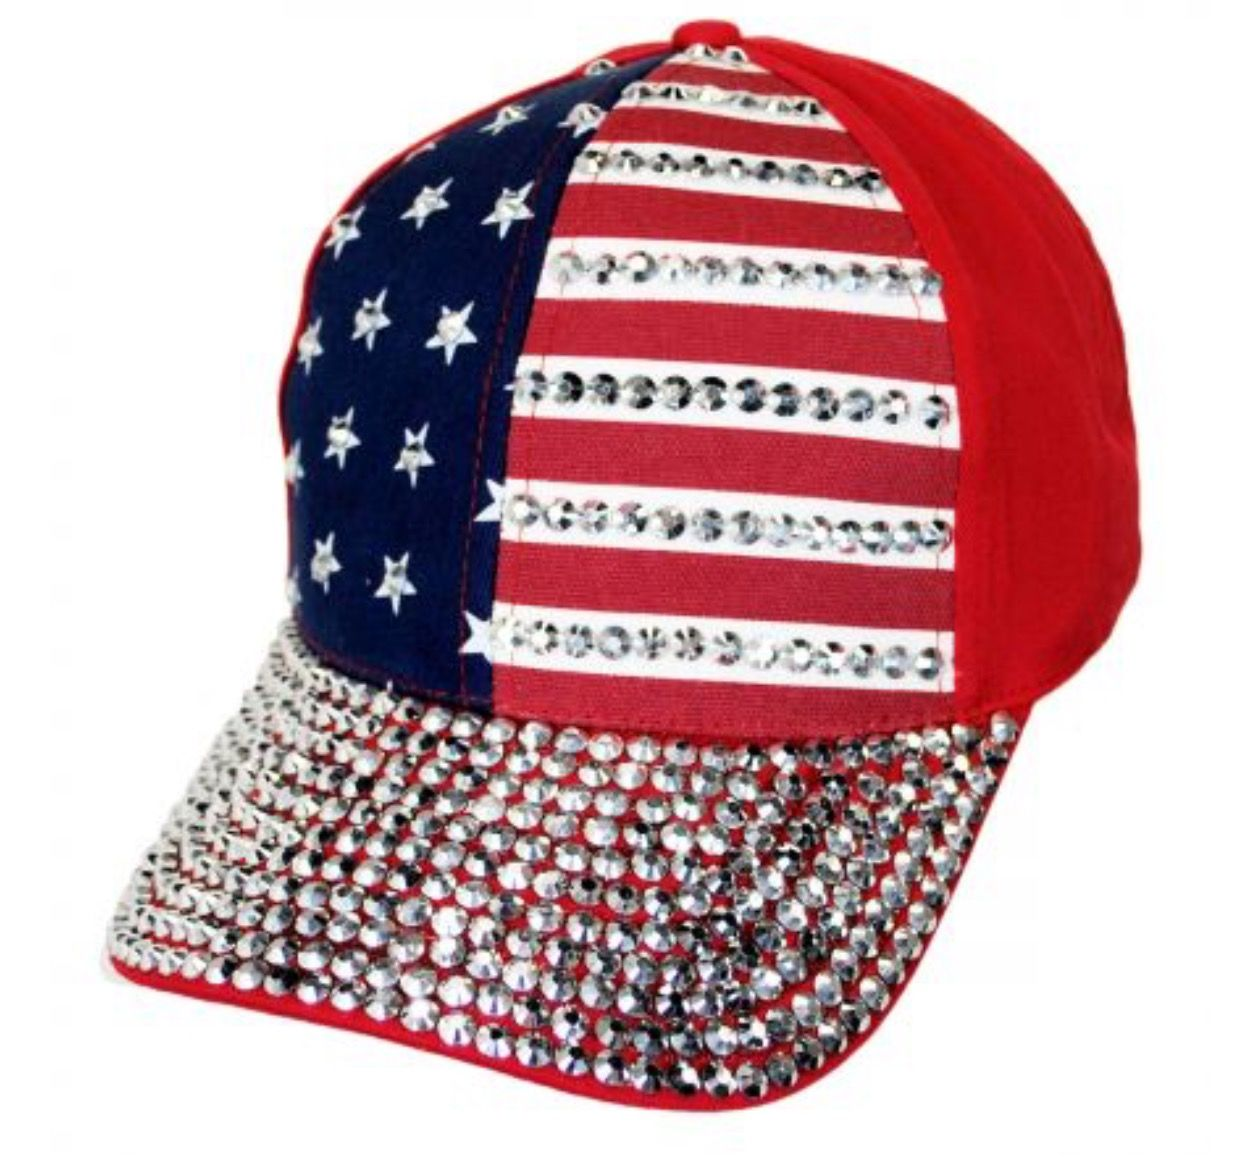 http   www.villagehatshop.com product sequin-hats 451139-165354 ... 616d56097d79